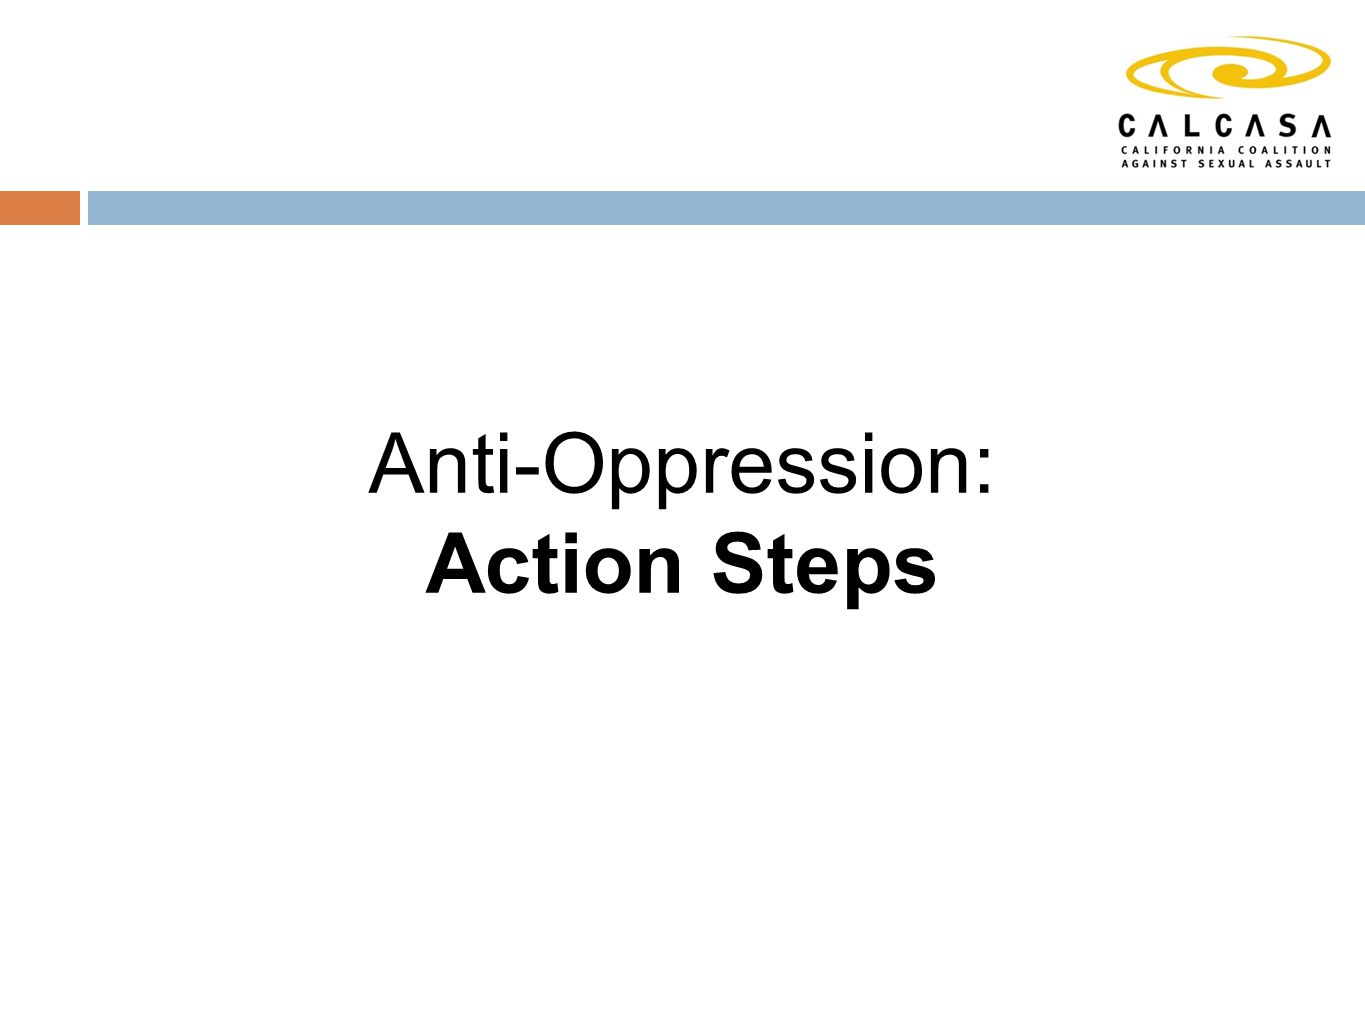 Anti-Oppression: Action Steps